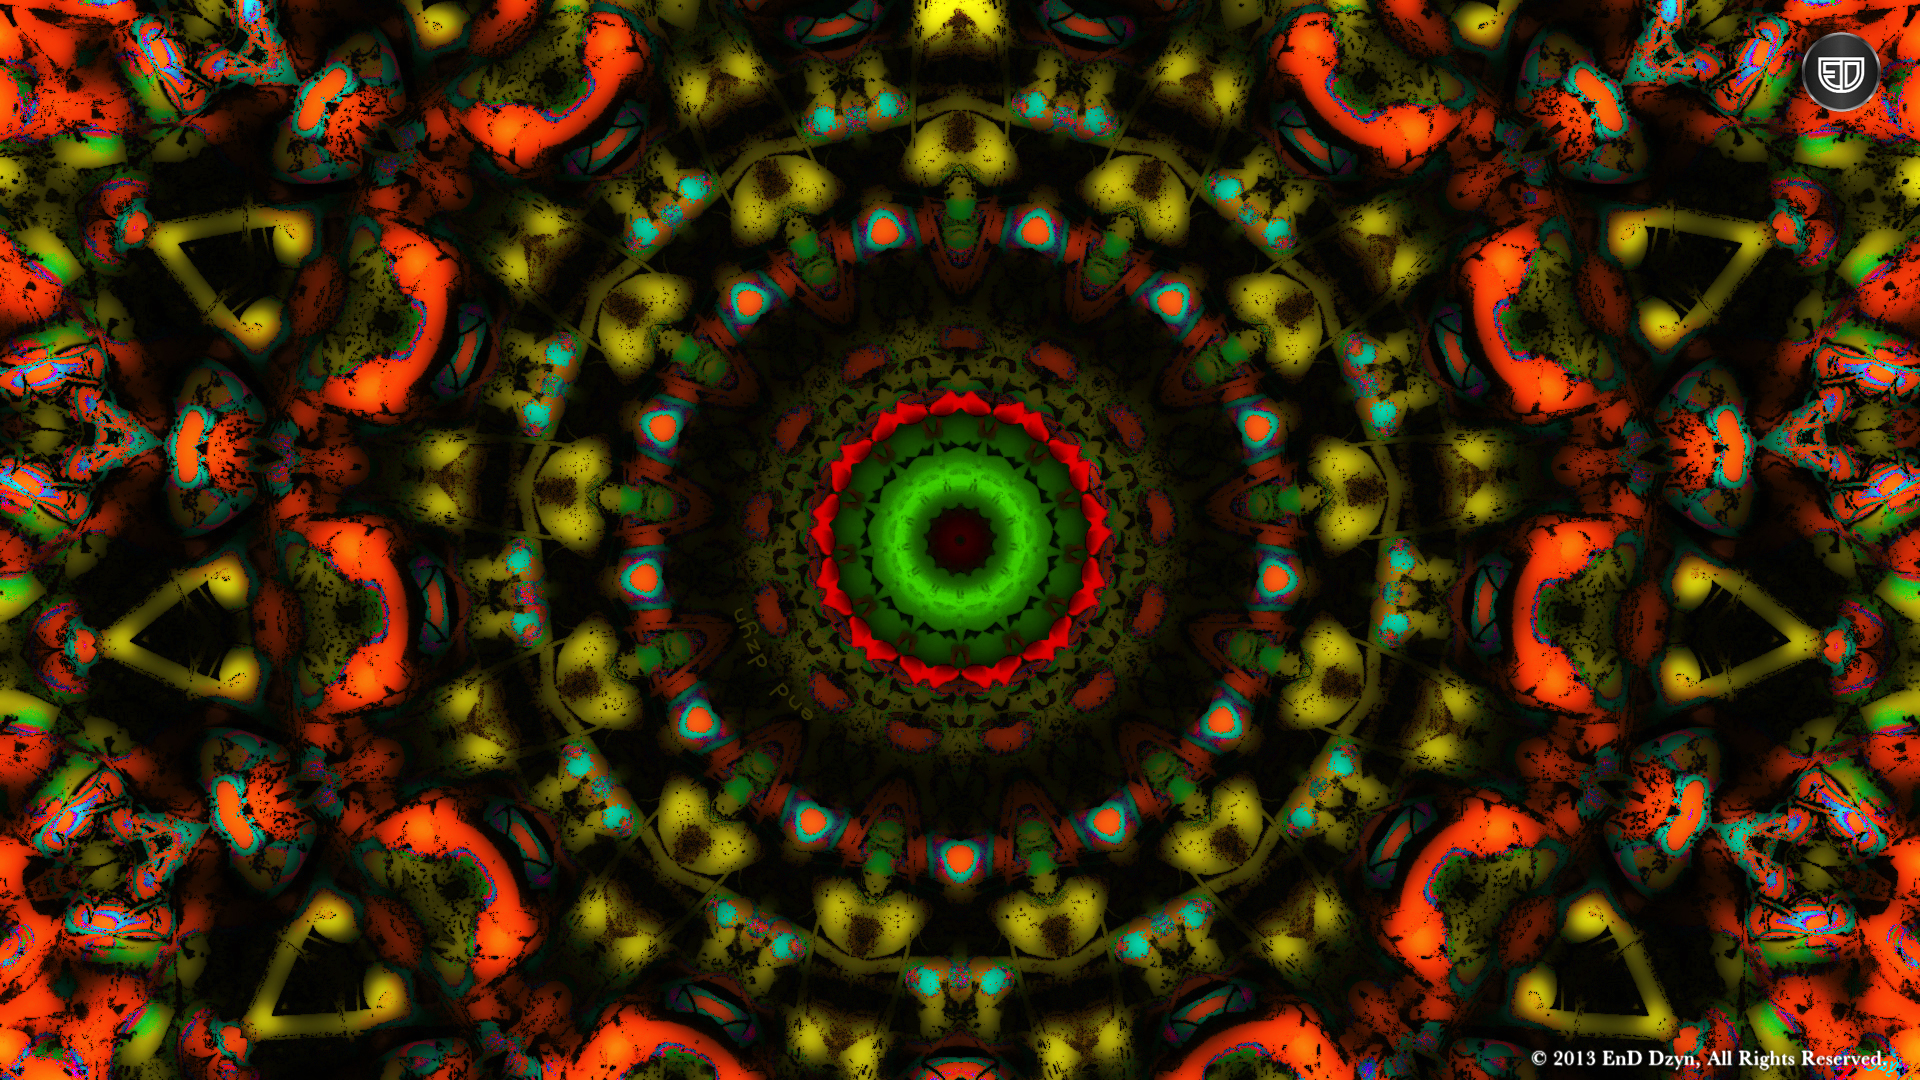 Psychedelic HD Wallpaper Background Yellow Orange Trippy 3D 1920x1080